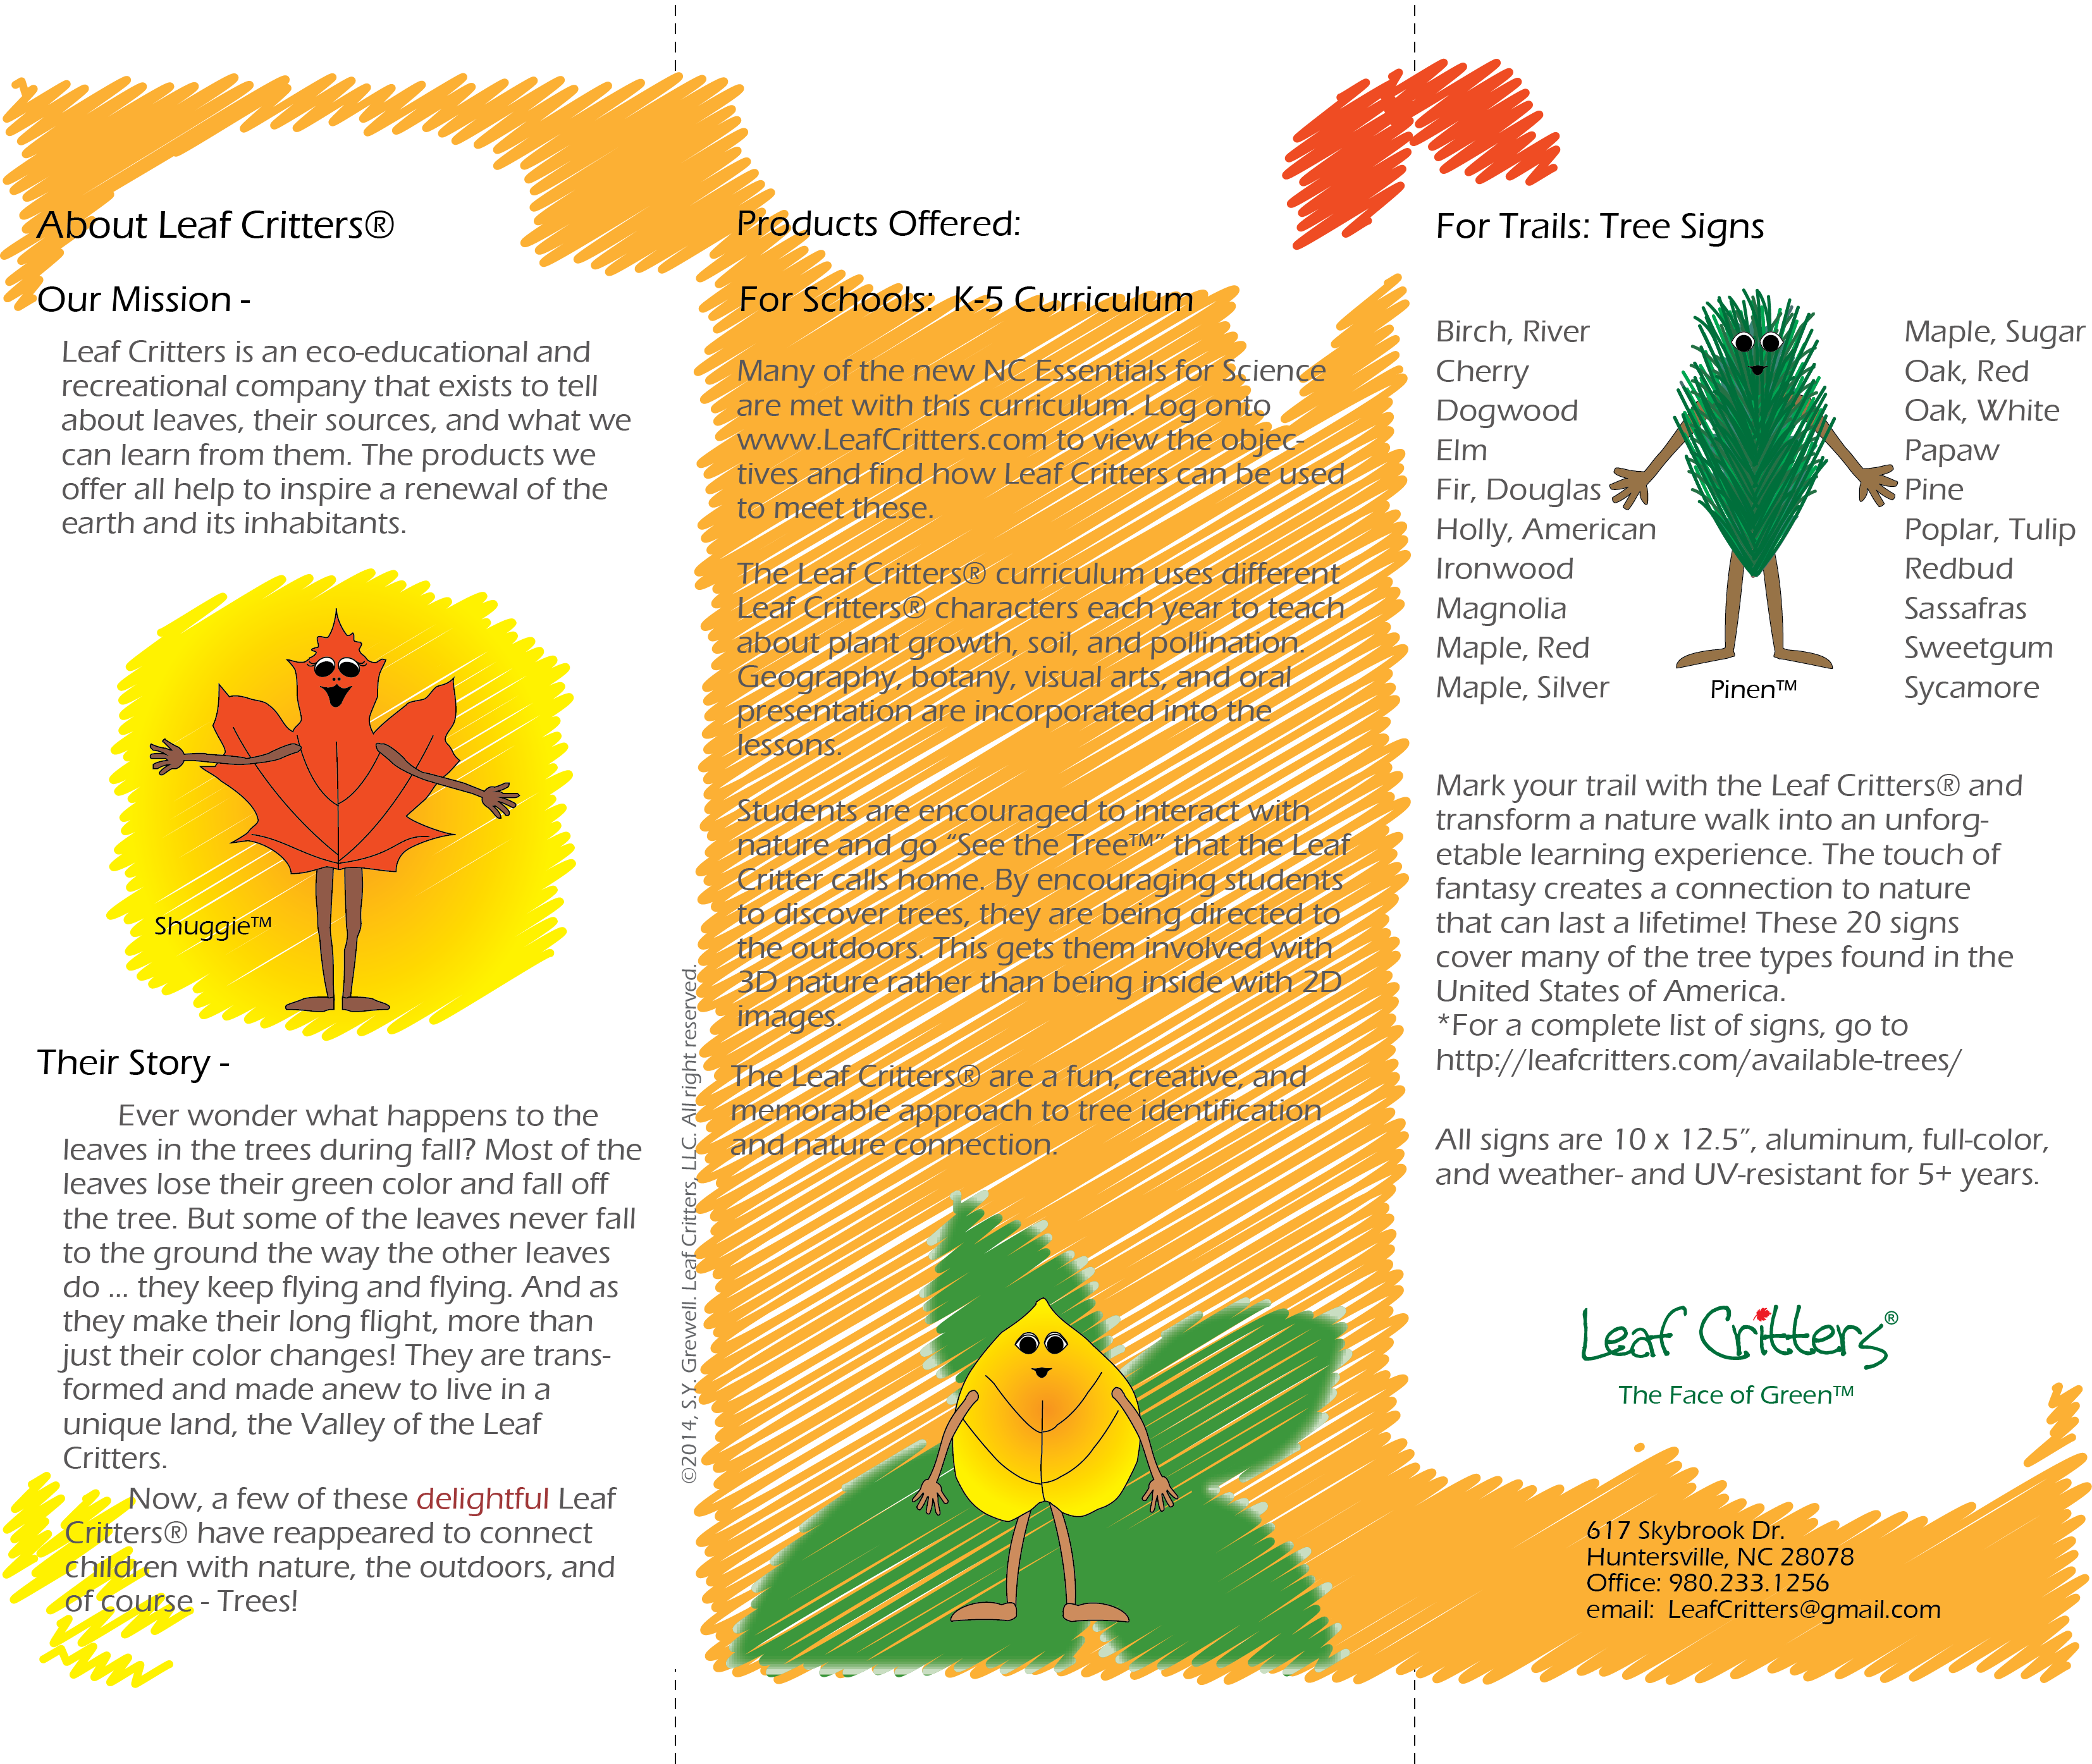 About the Leaf Critters